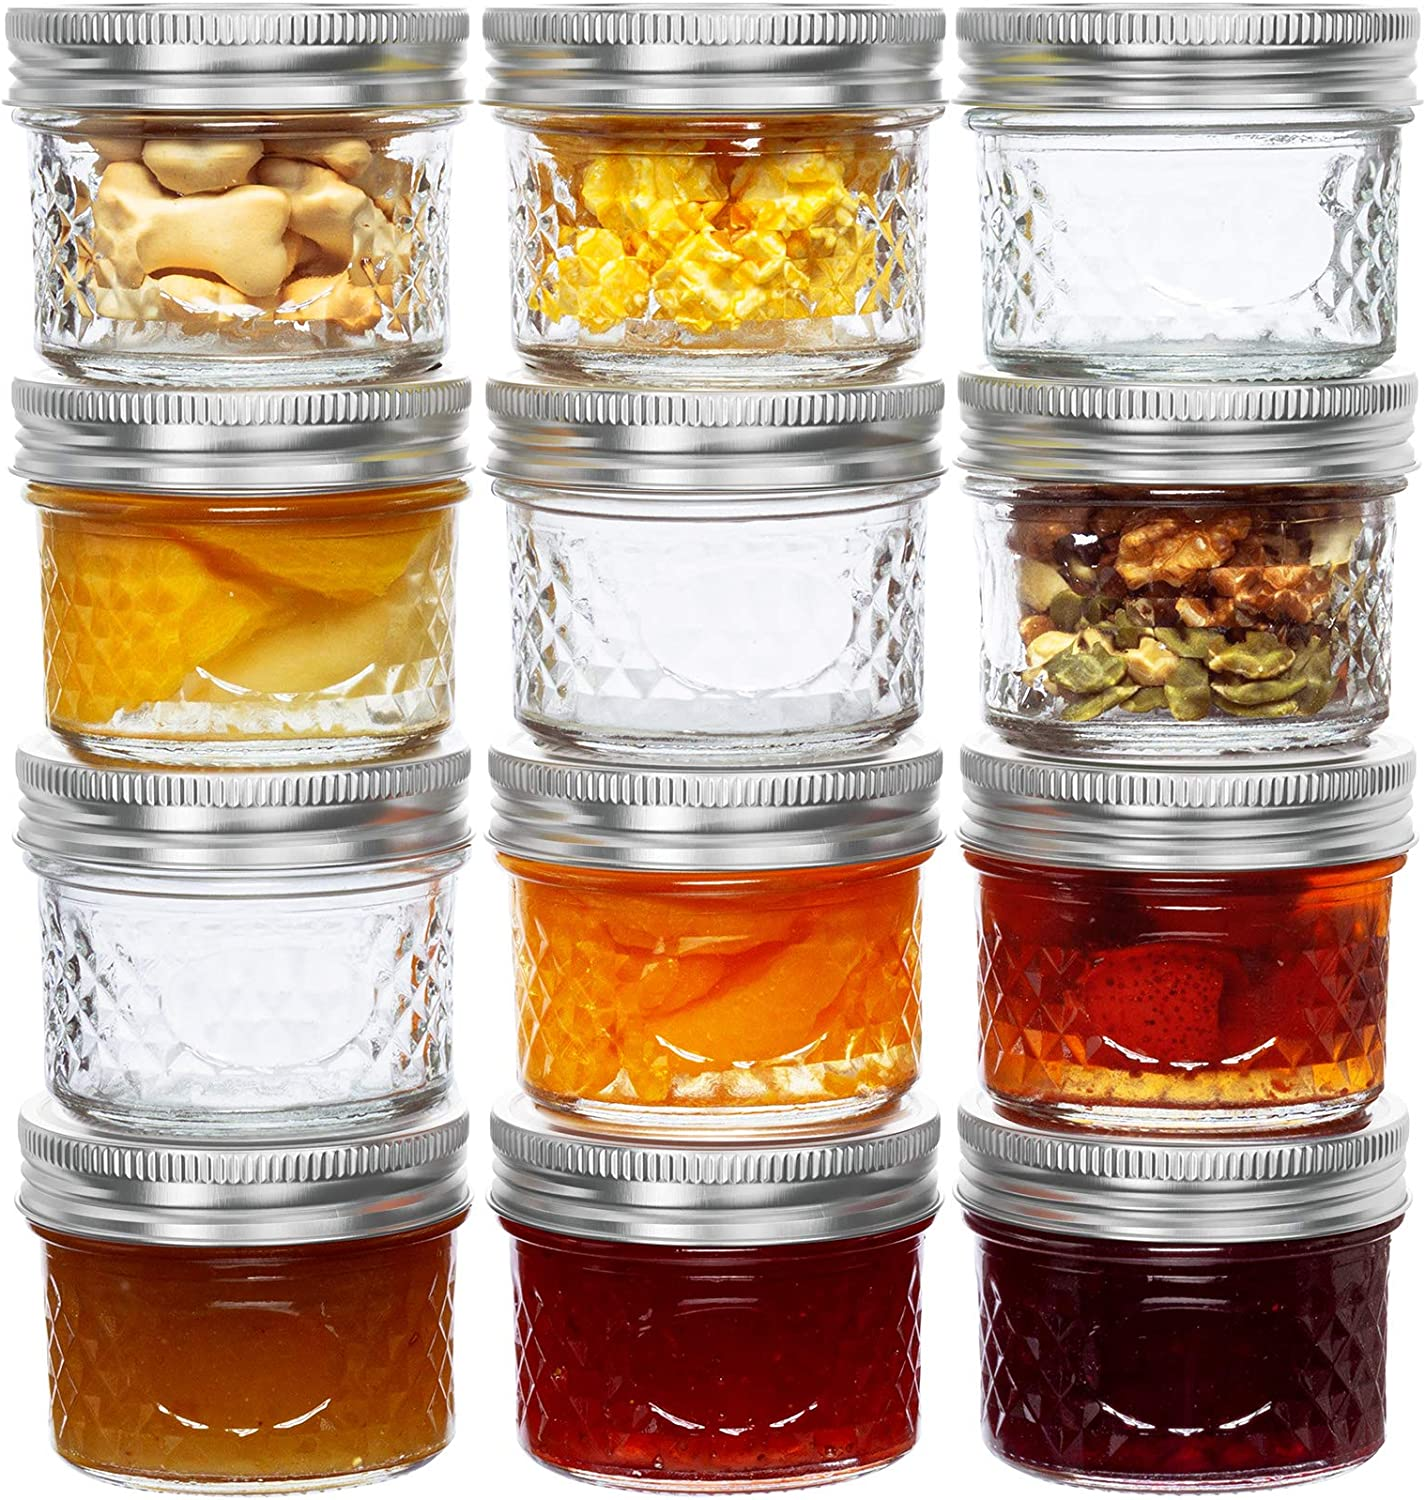 4 Oz Mason Jars Glass Mini Canning Jelly Jars with Airtight Regular Mouth Lids & Band, Quilted Crystal Jars for Jams, Spice, Food Storage, Wedding / Shower Favors, Preserves, Drinking-12 Pack